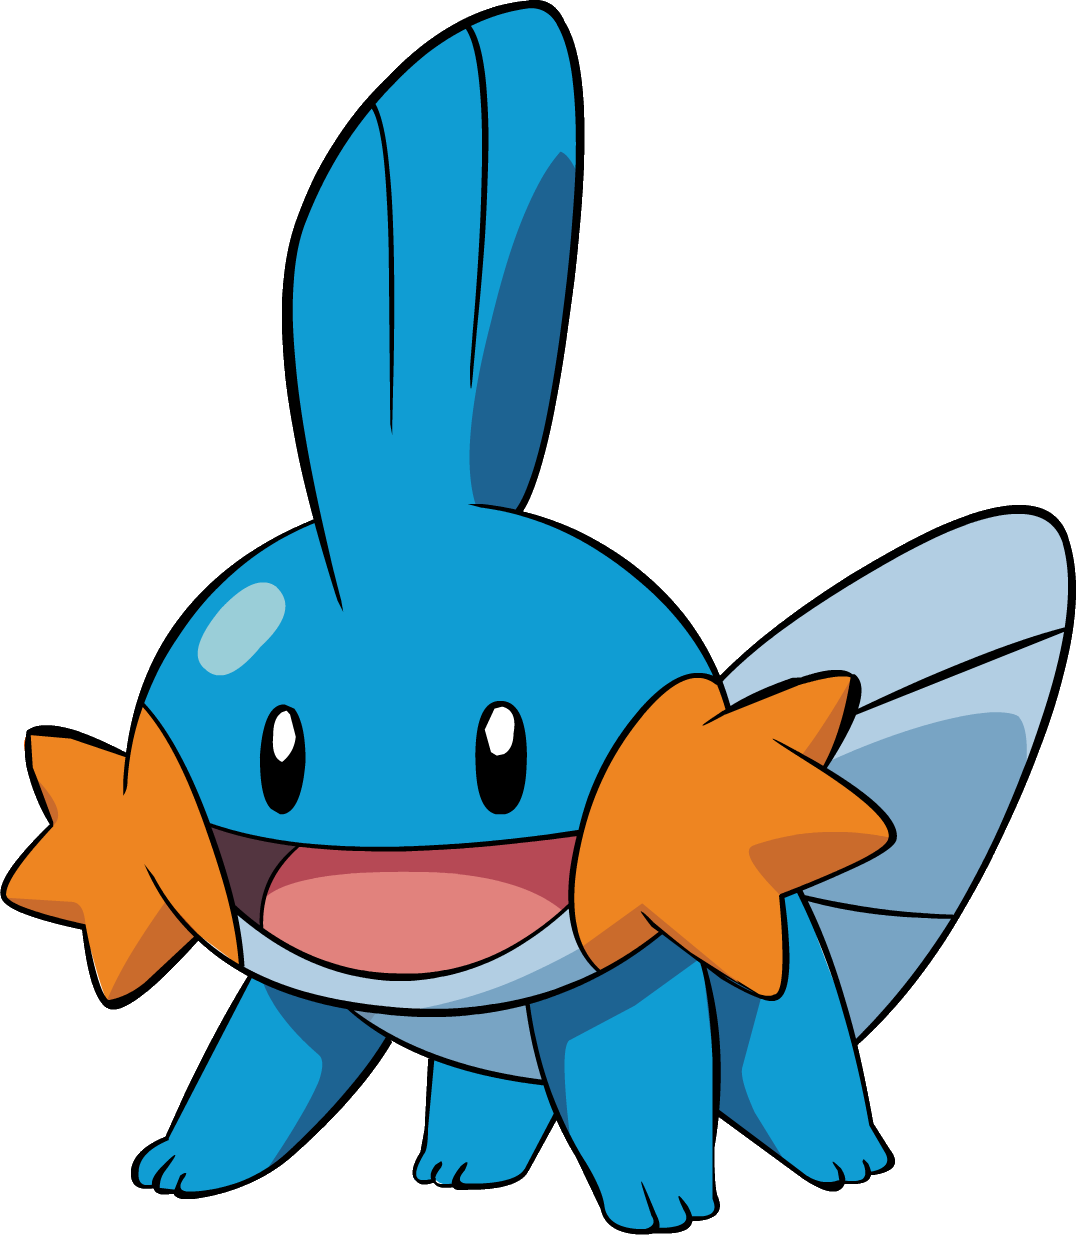 Mudkip, one of the easiest Pokemon to draw